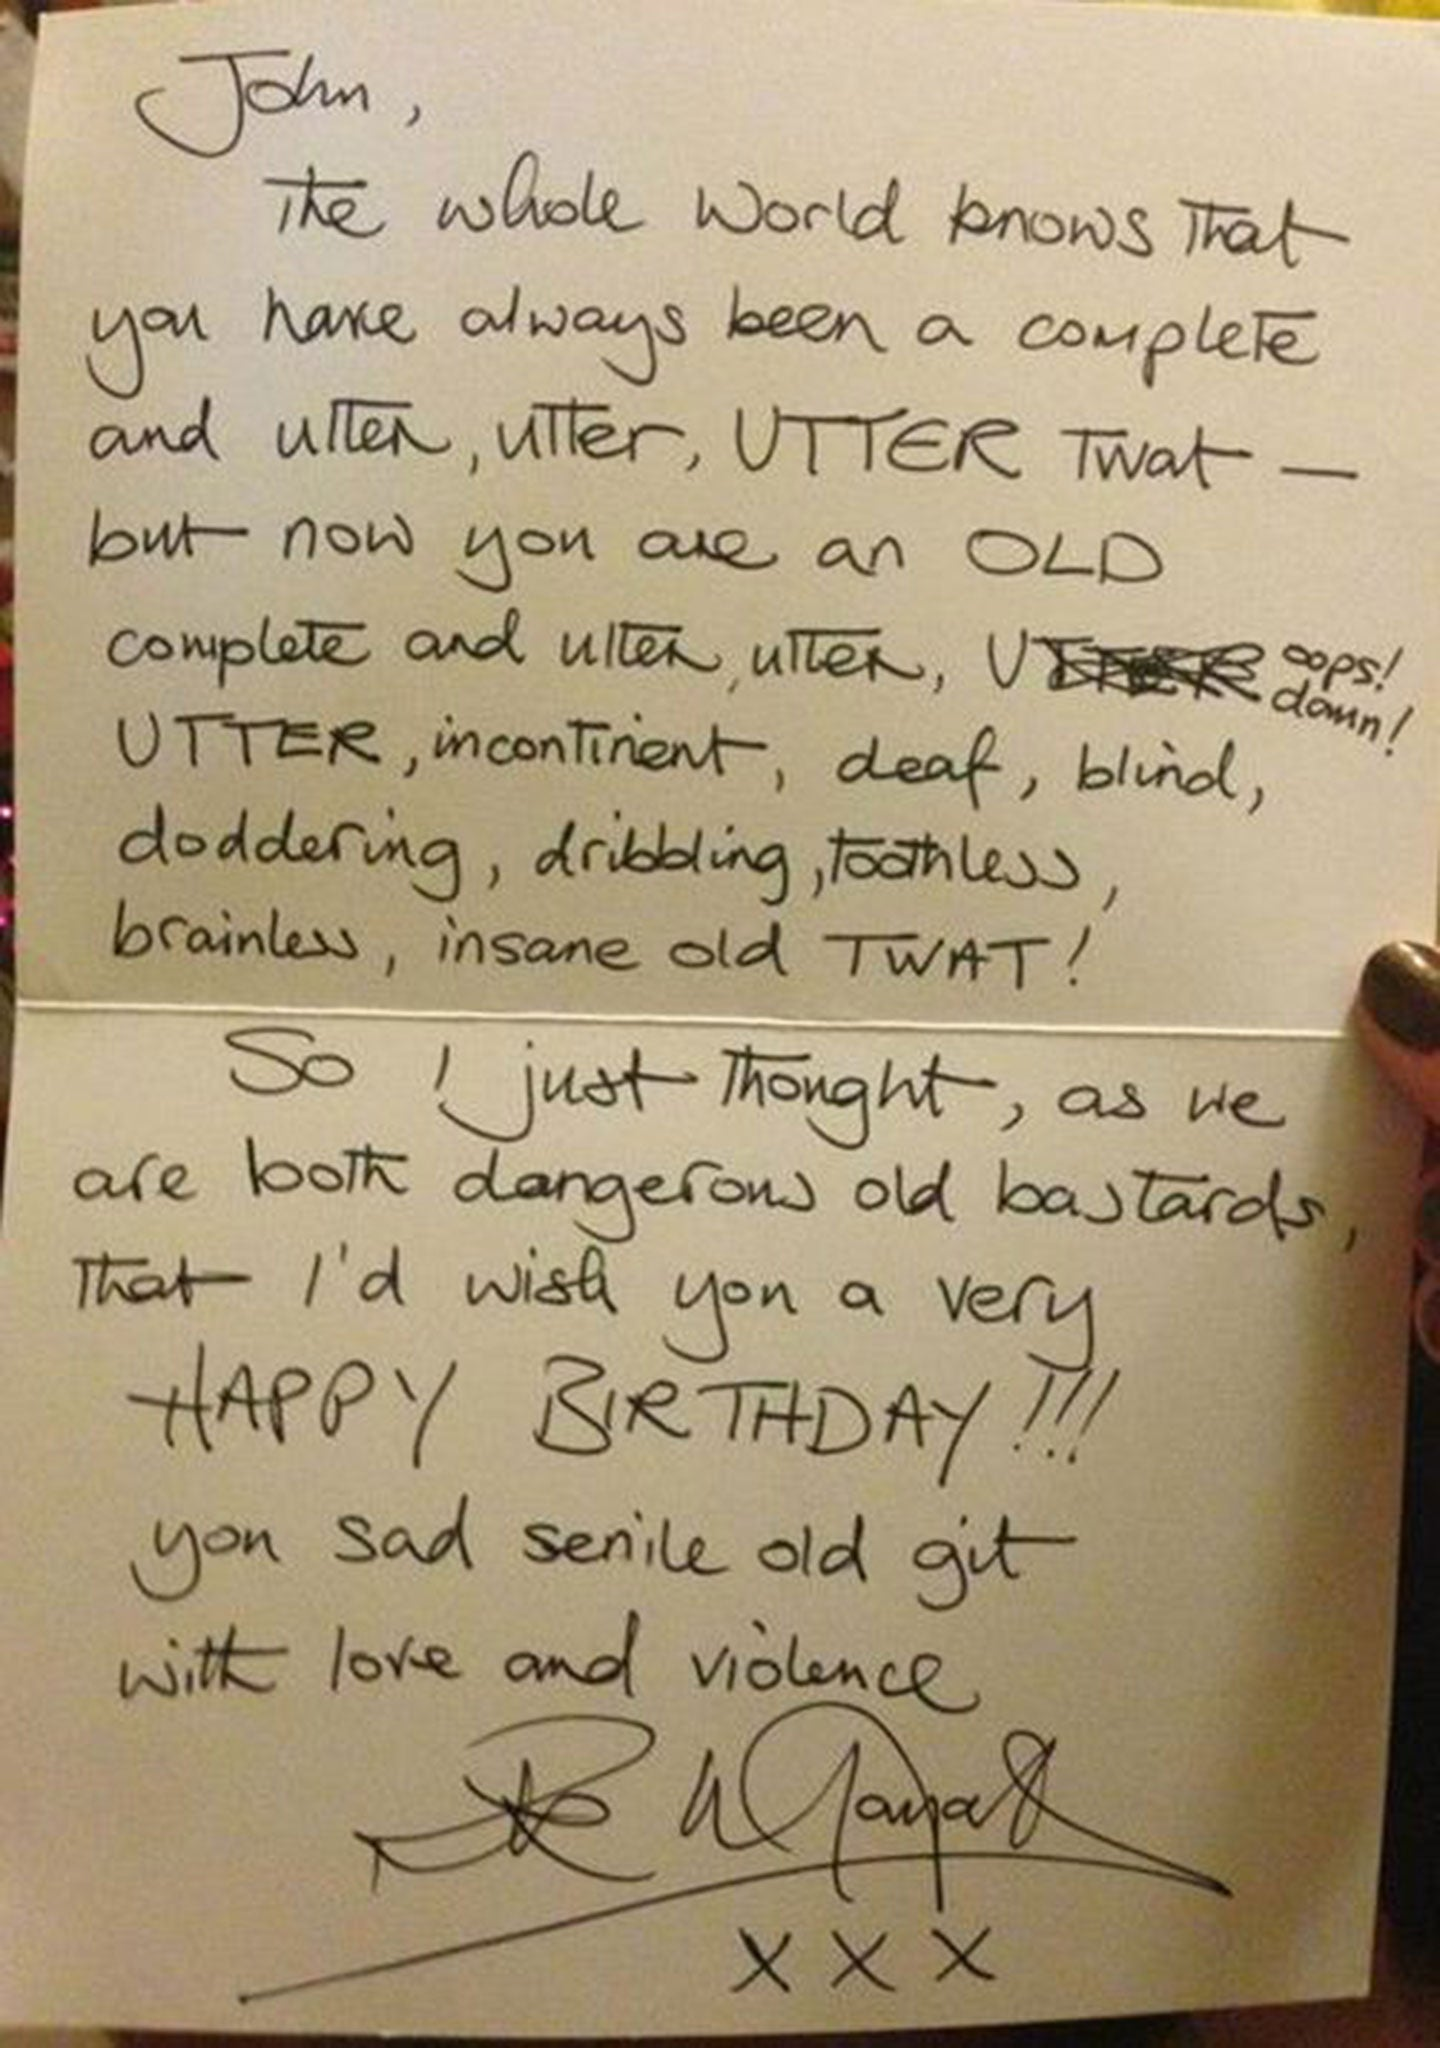 Rik Mayall Fans Family Requested A Signed Birthday Card And This